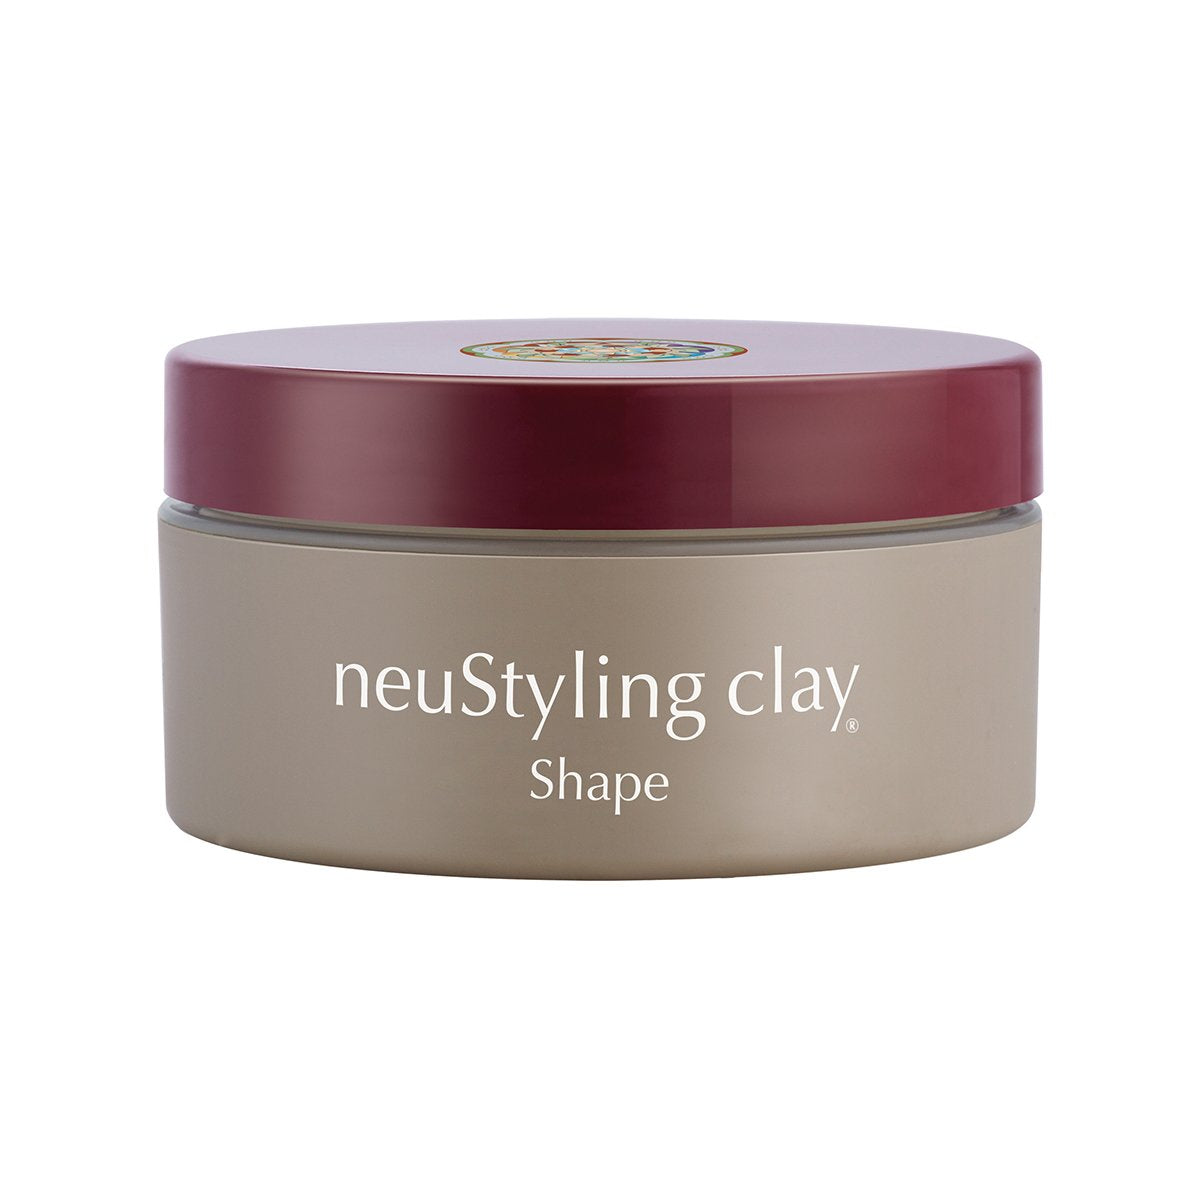 neuStyling clay - Cocoa Spa Boutique